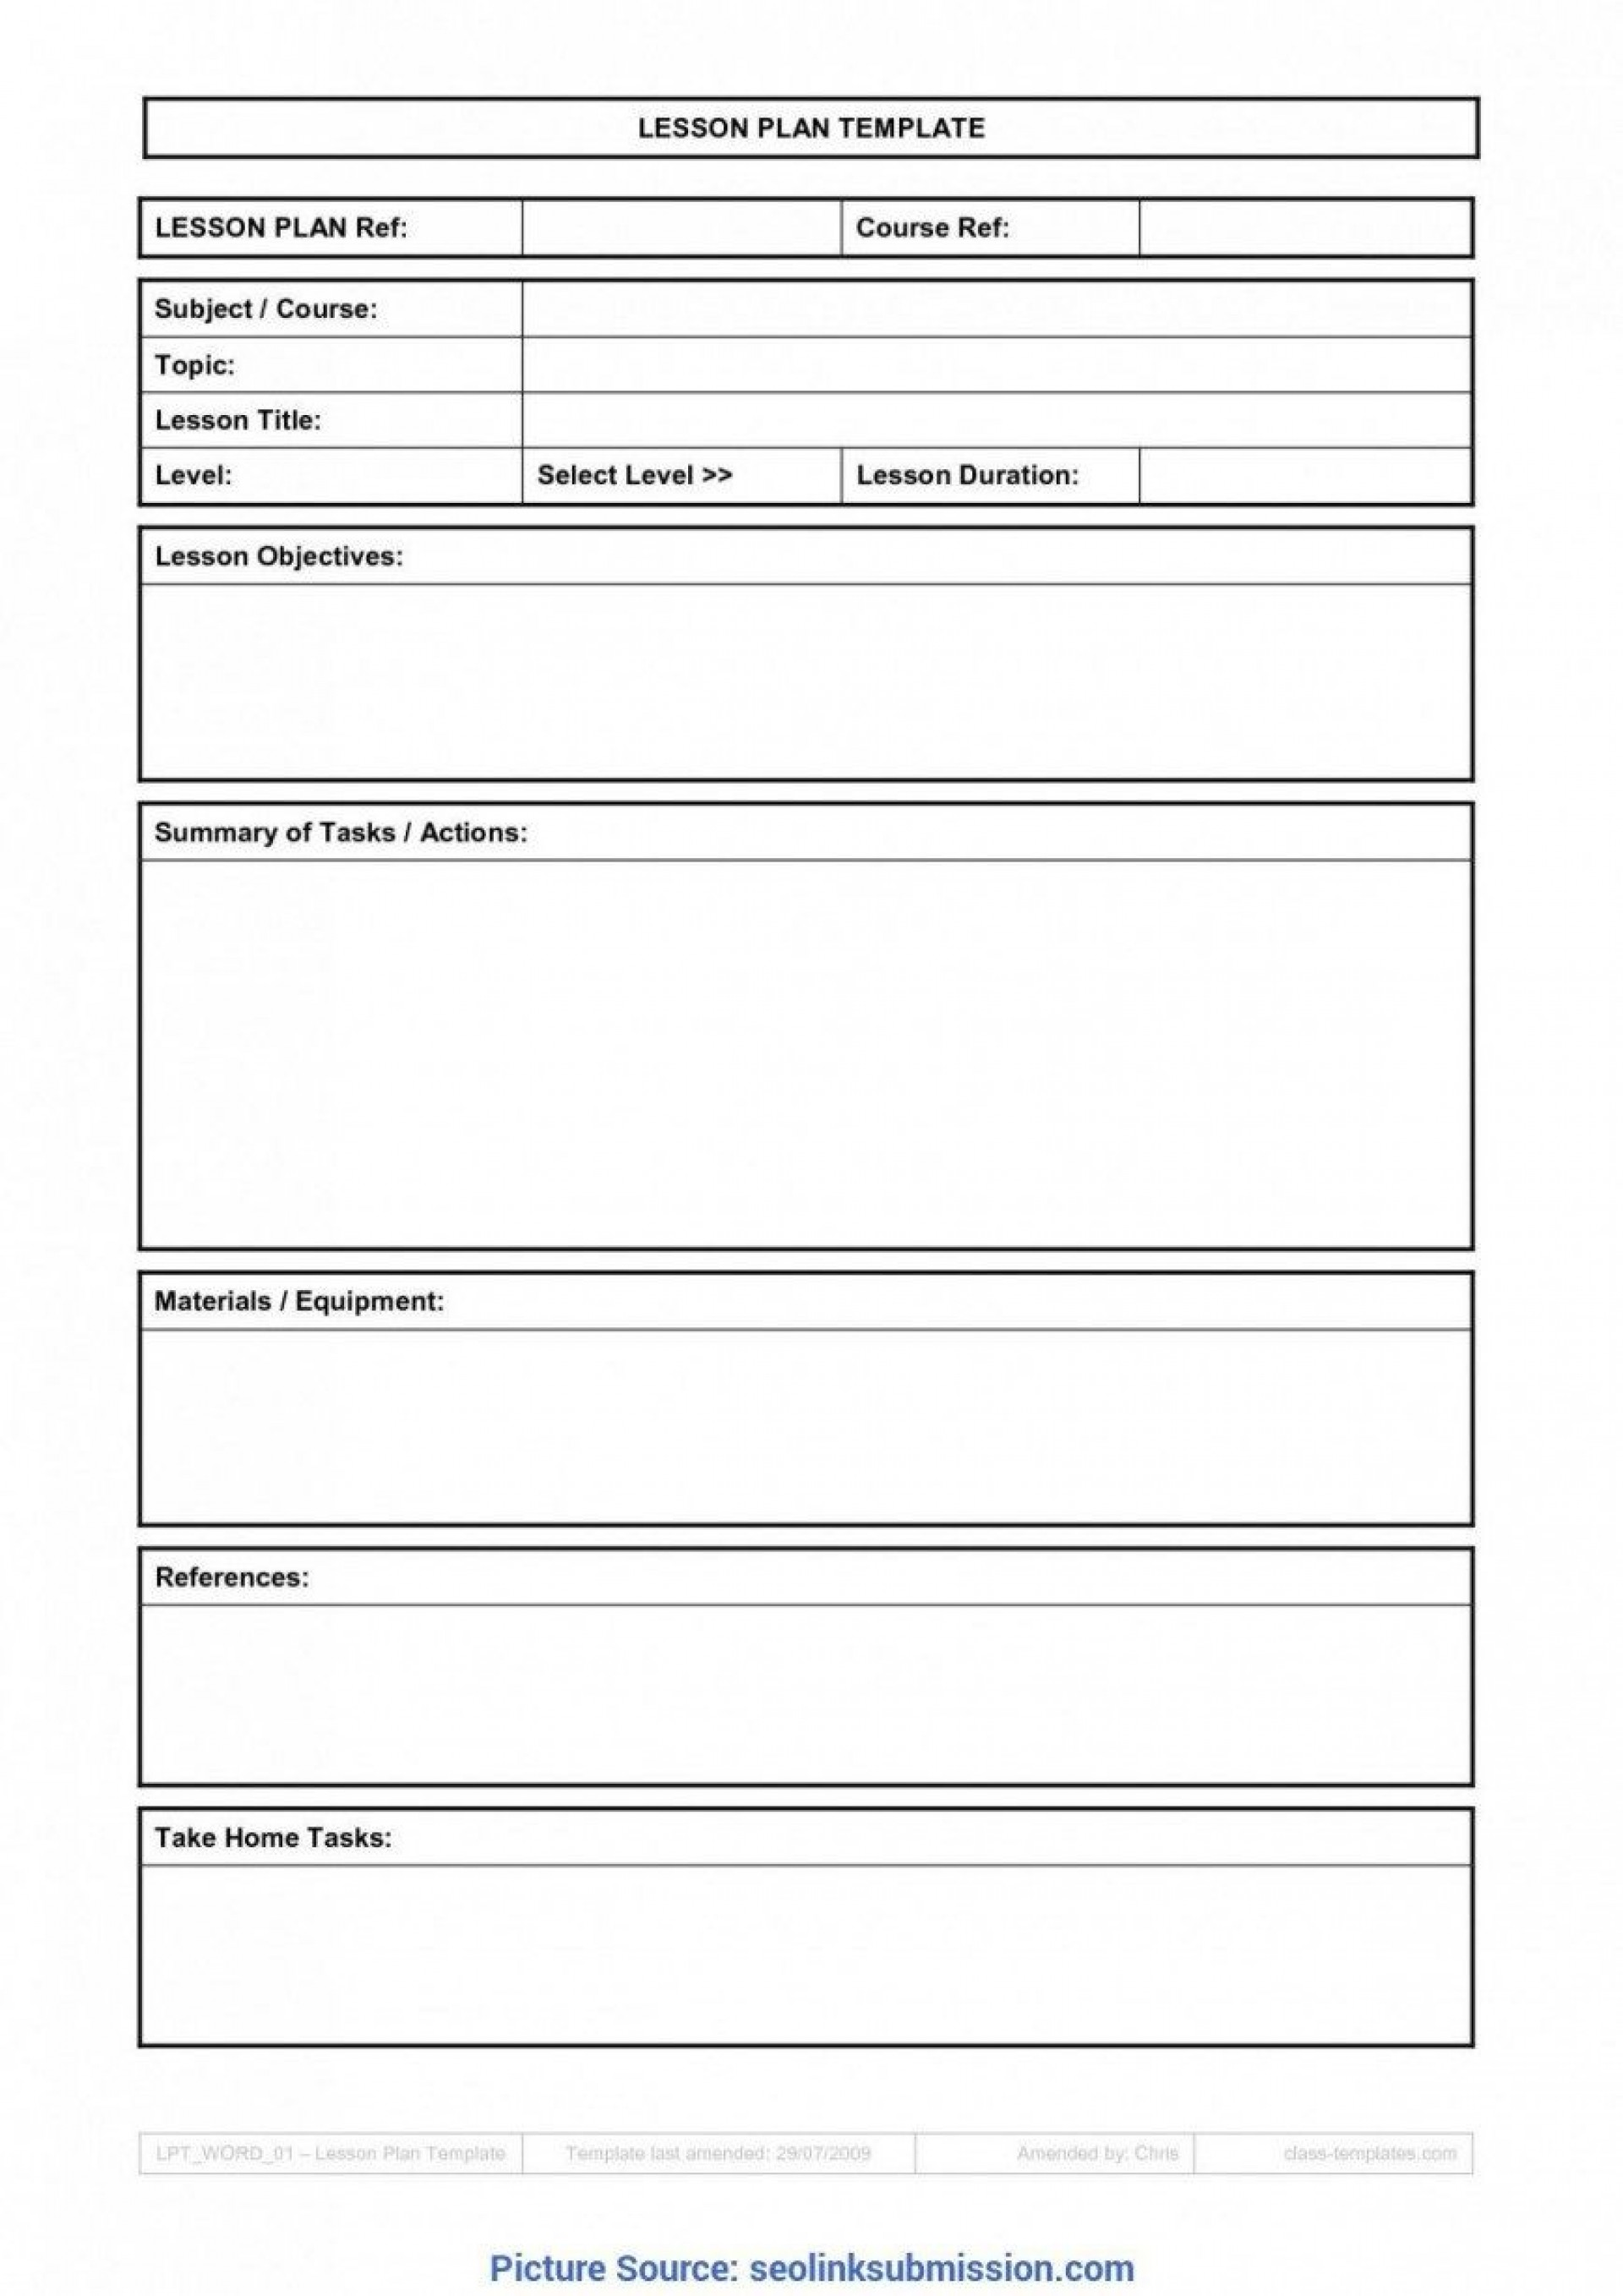 007 Top Weekly Lesson Plan Template Google Doc Sample  Docs 5e Simple1920